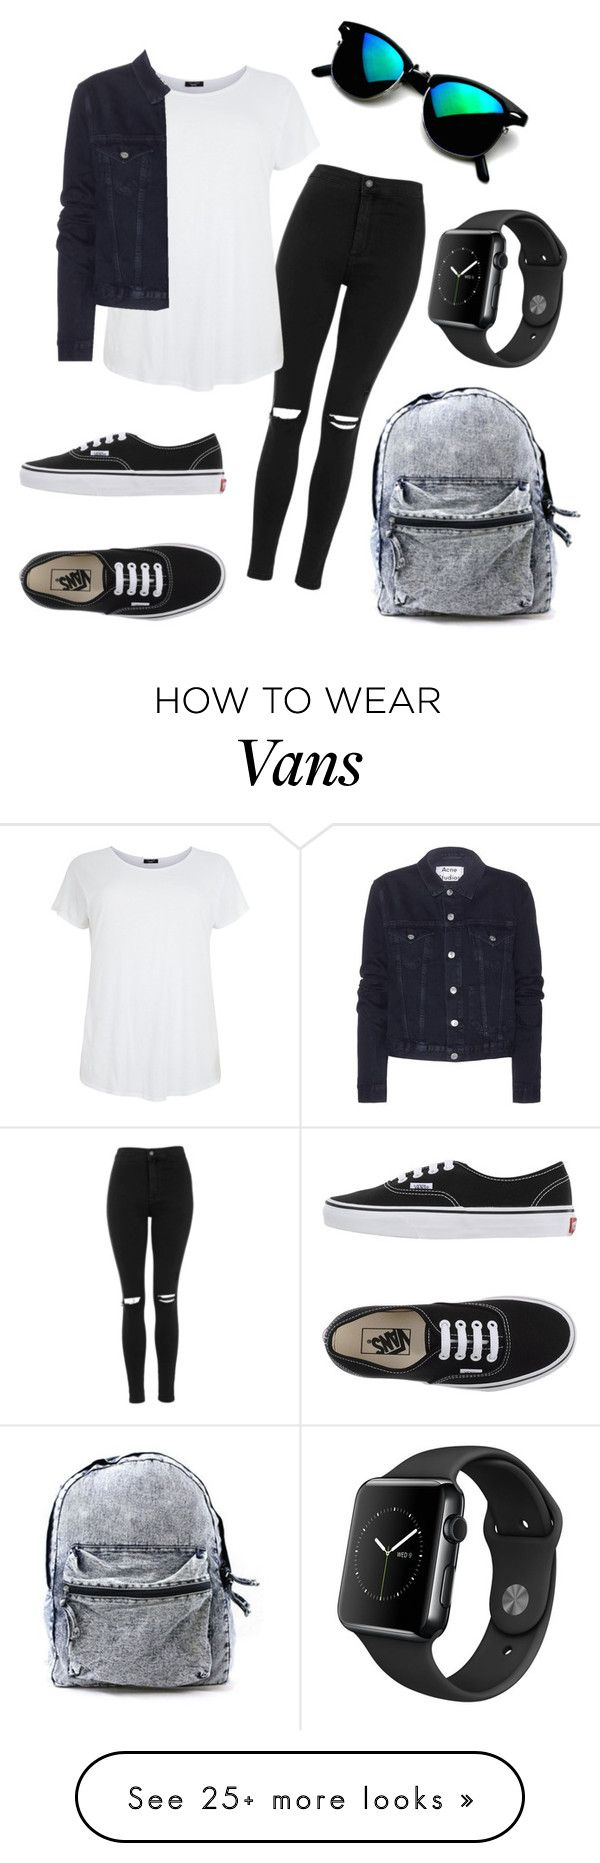 """My fav outfit ❤️"" by eemaj on Polyvore featuring Topshop, Acne Studios and Vans"